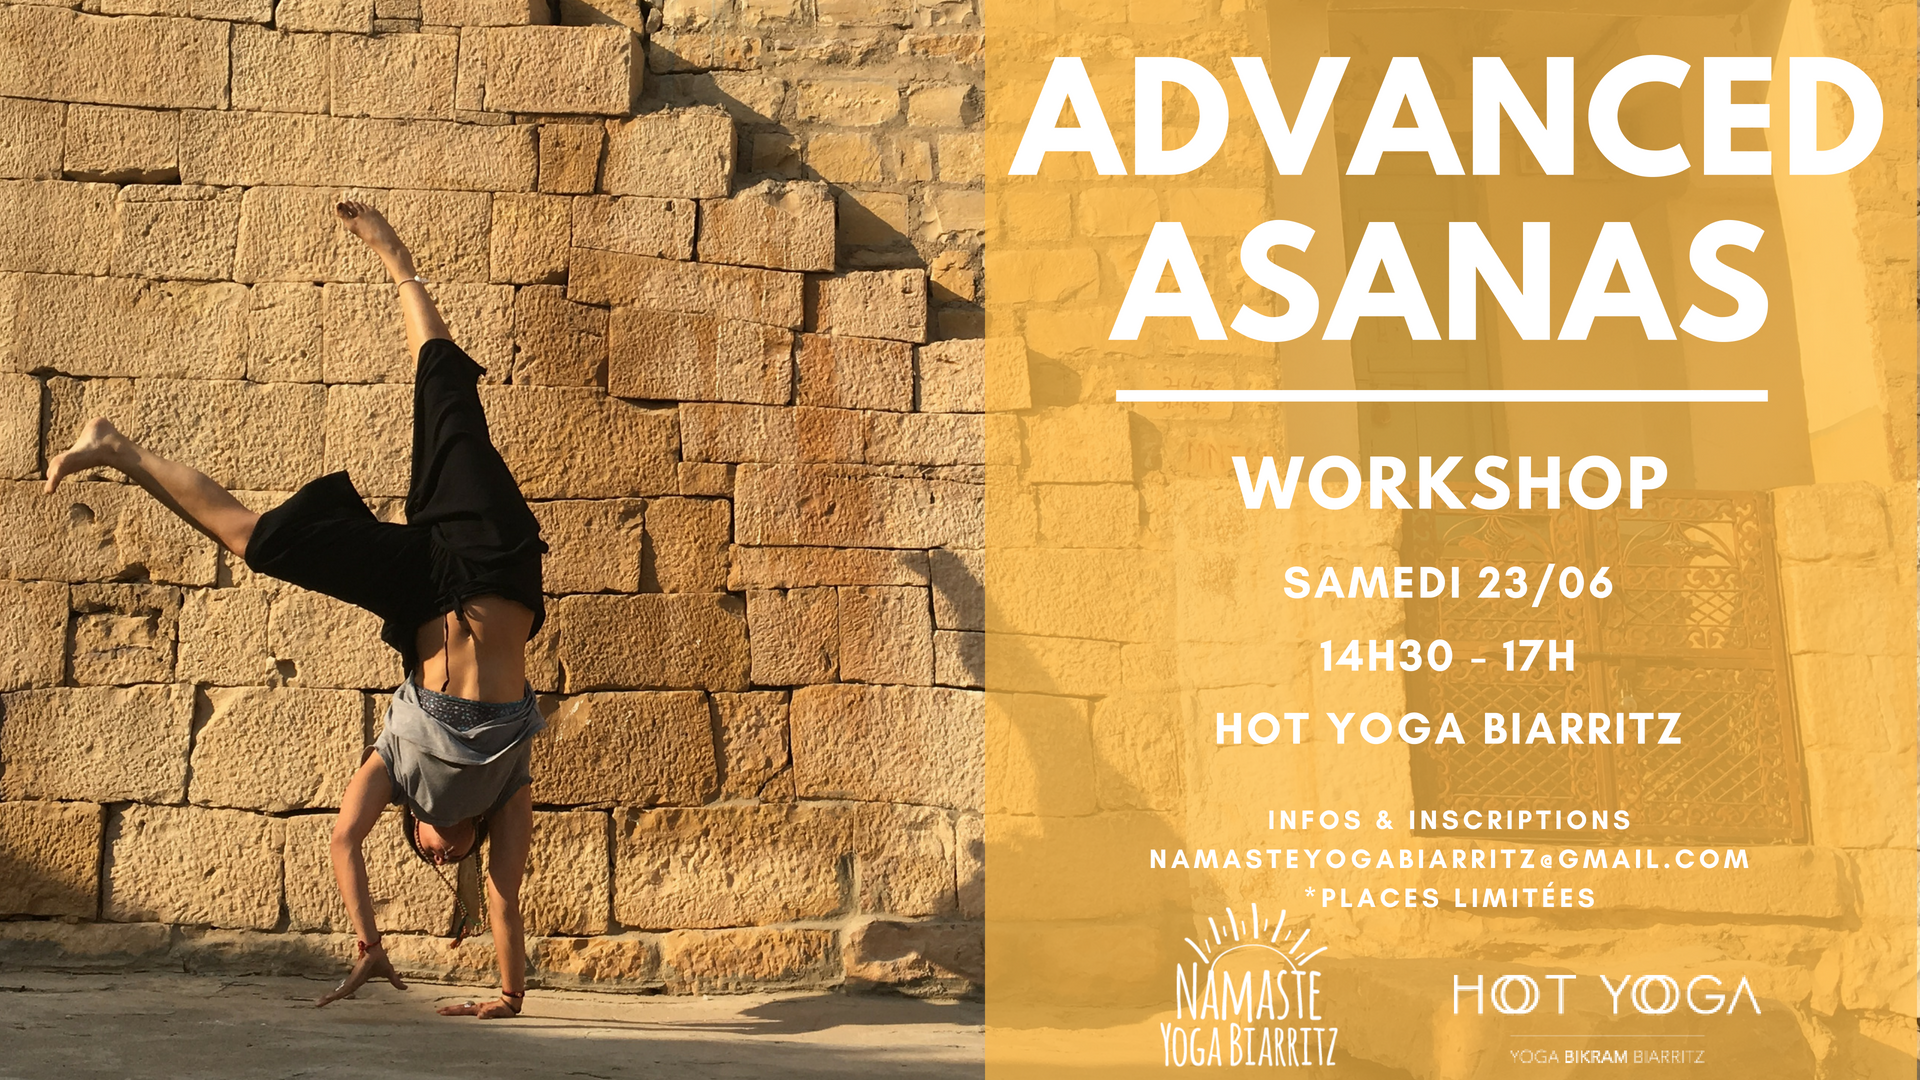 Advanced Asanas Workshop